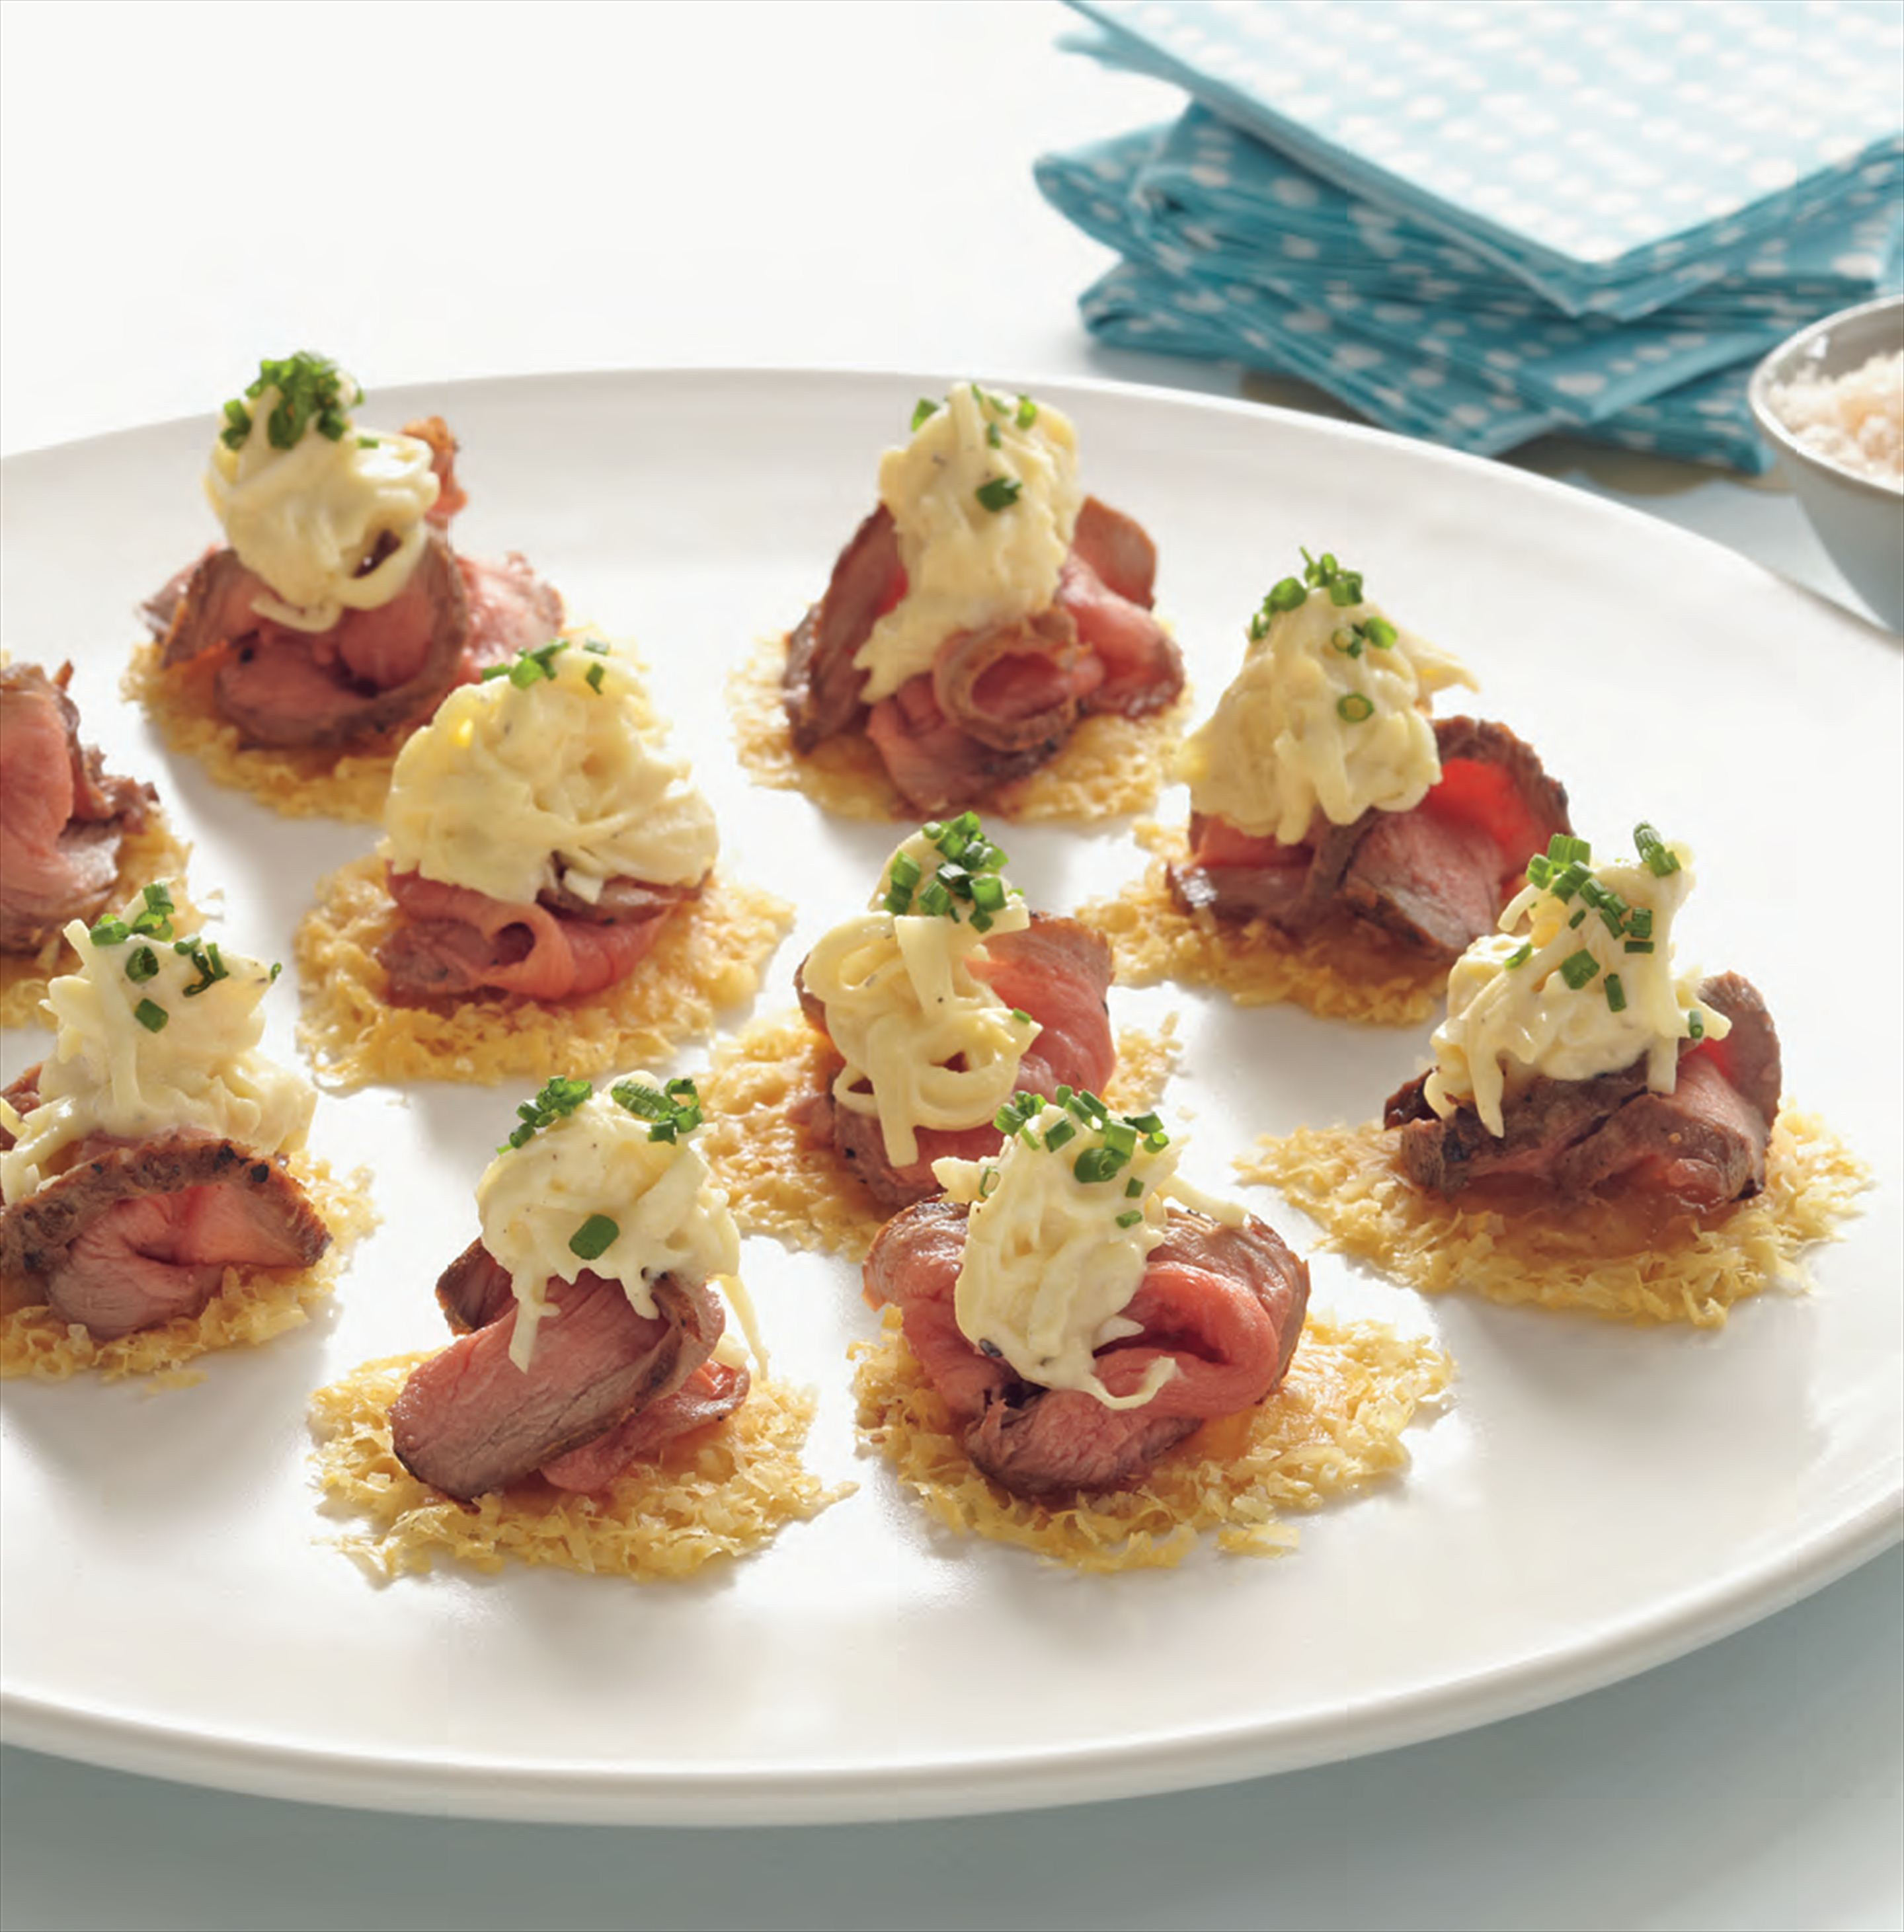 Parmesan wafers with celeriac remoulade and roast beef